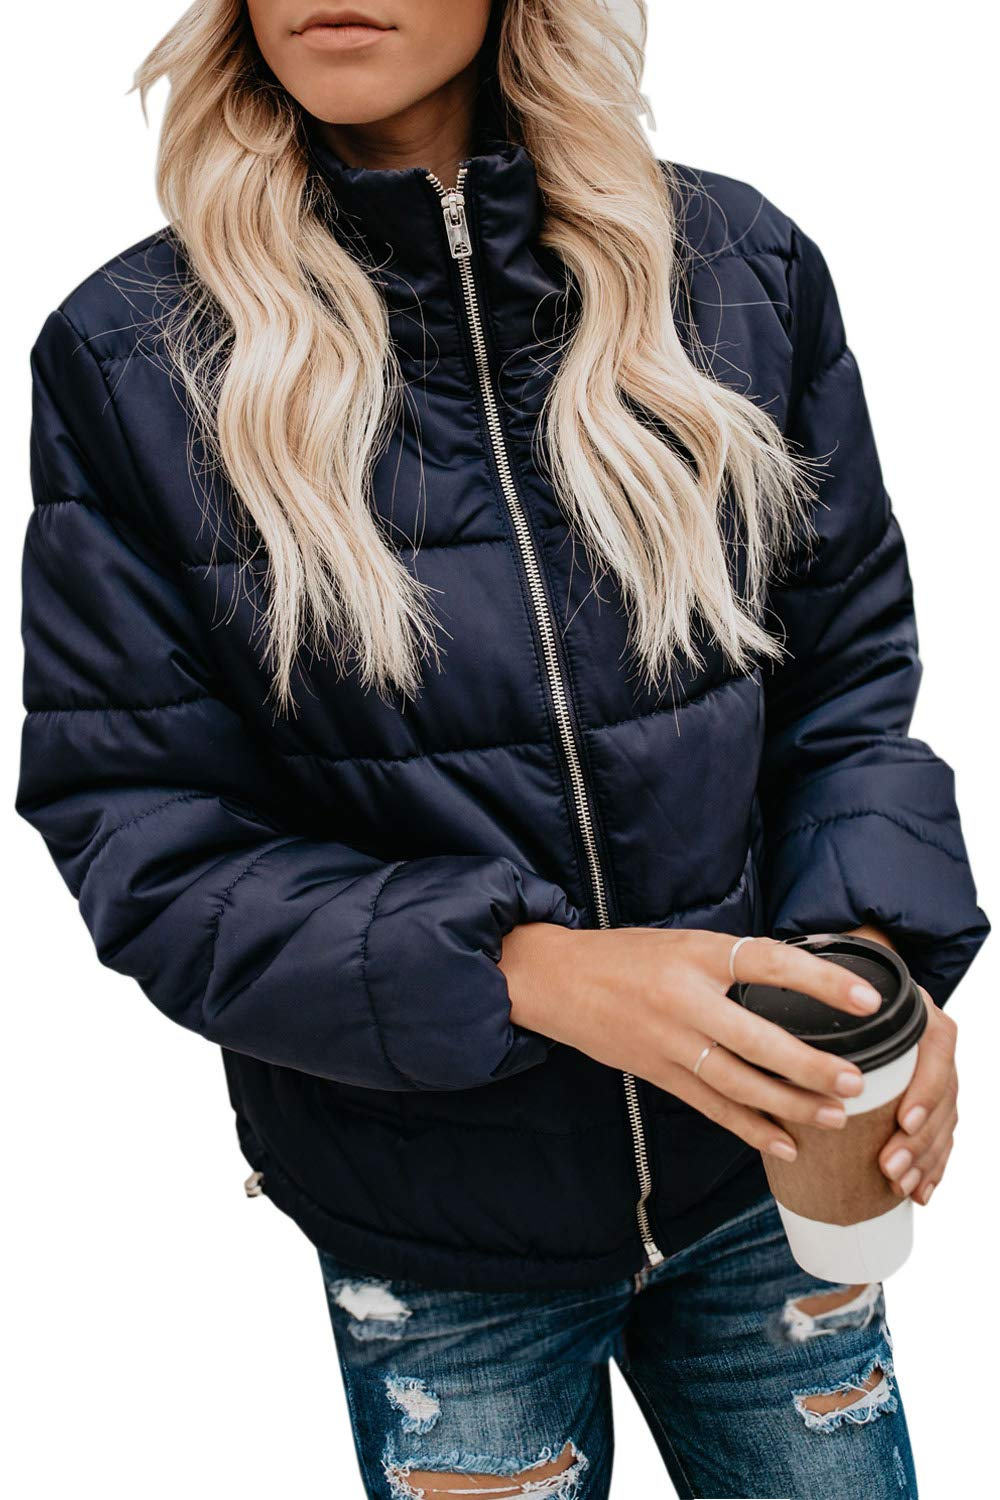 CILKOO Womens Classic Winter Ladies Fashion Zip Down Horn Button Open Front Long Sleeve Faux Fur Hooded Long Slim Padded Quilted Coat Outerwear Jackets with Pockets Navy US12-14 Large by CILKOO